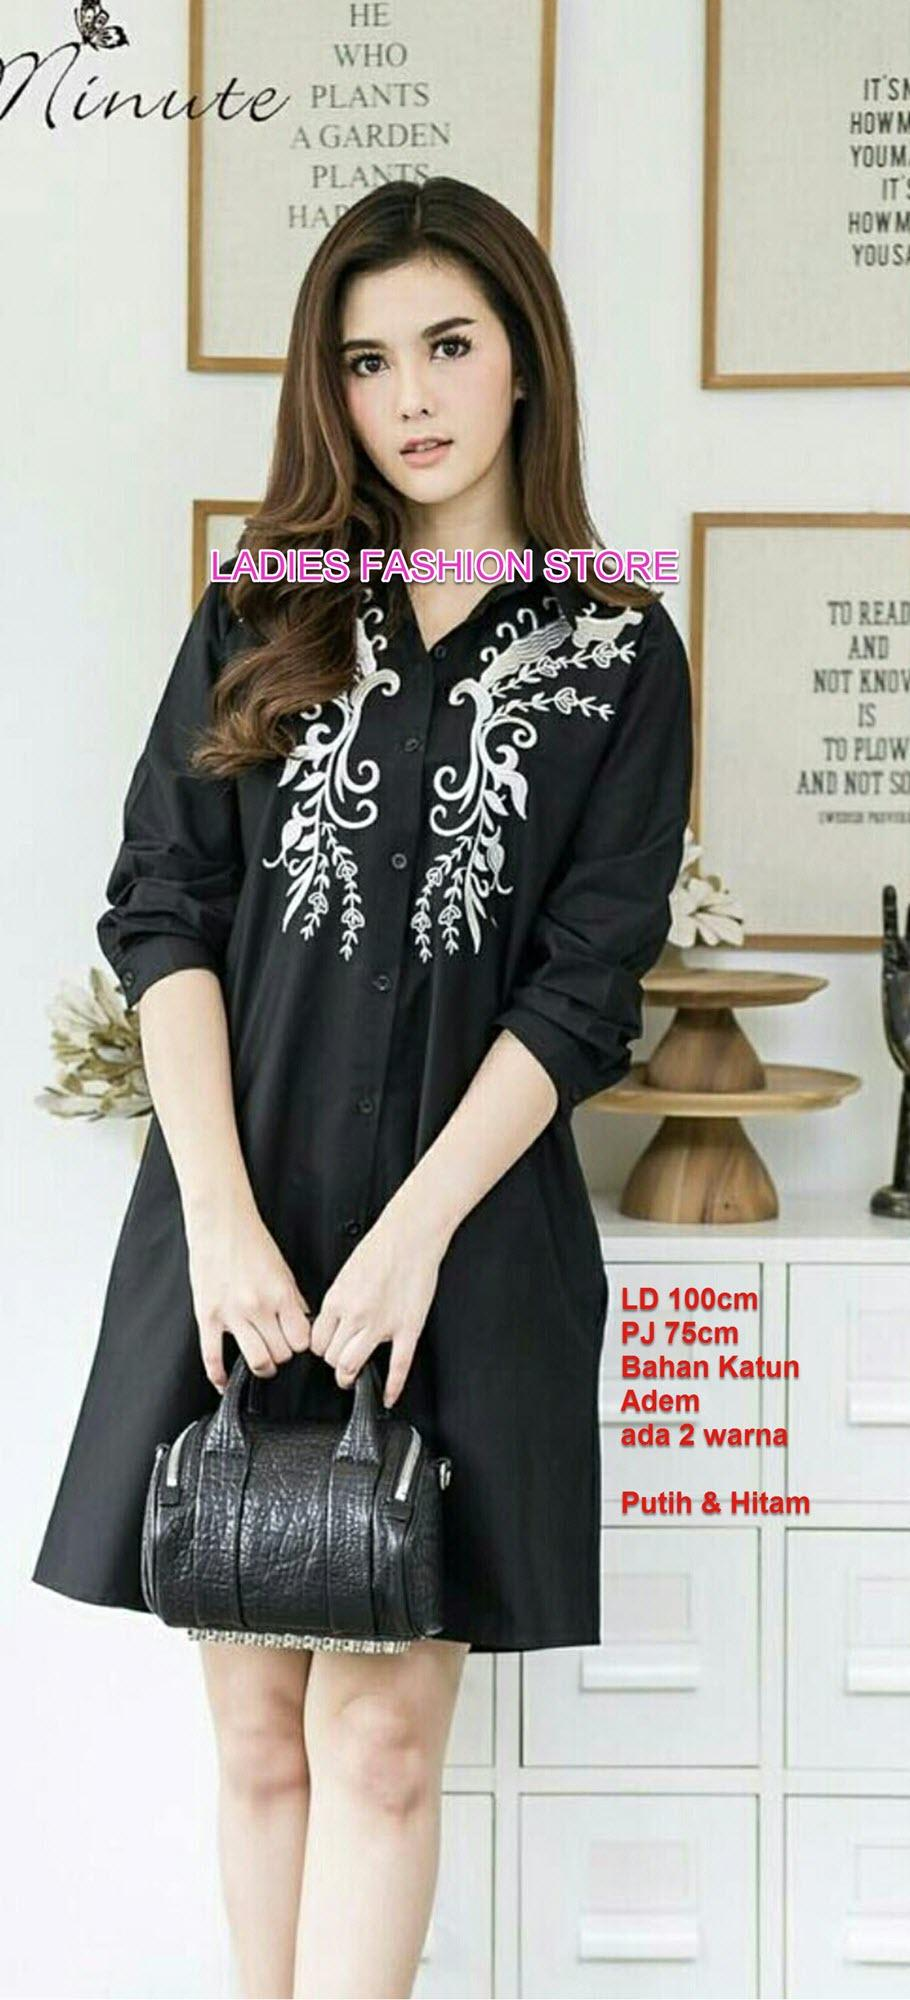 Kemeja Tunik Wanita Kerah / Baju Lebaran / Tunik Wanita / Atasan Wanita / Blouse Cewek / Pakaian Wanita Terndi / Dress Wanita Pendek / Midi Dress / New Long Hem / korean Dress / Baju Tunik Import / Baju Muslim Tunik / nr owerfl blackwhit - HITAM